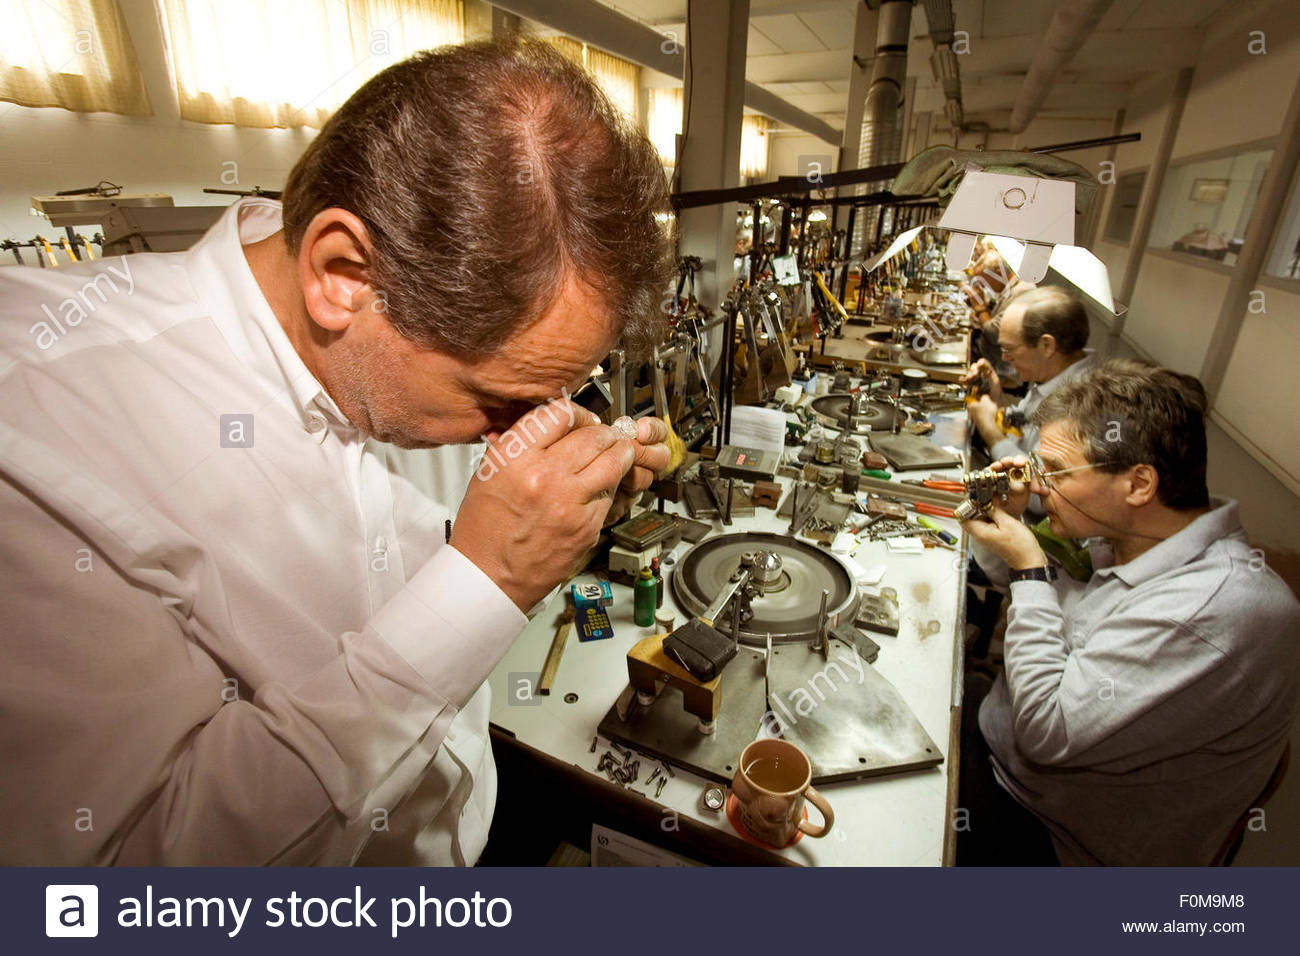 The production manager examins a diamond while the workers are cutting, polishing the diamonds, Overseas Diamonds - Stock Image